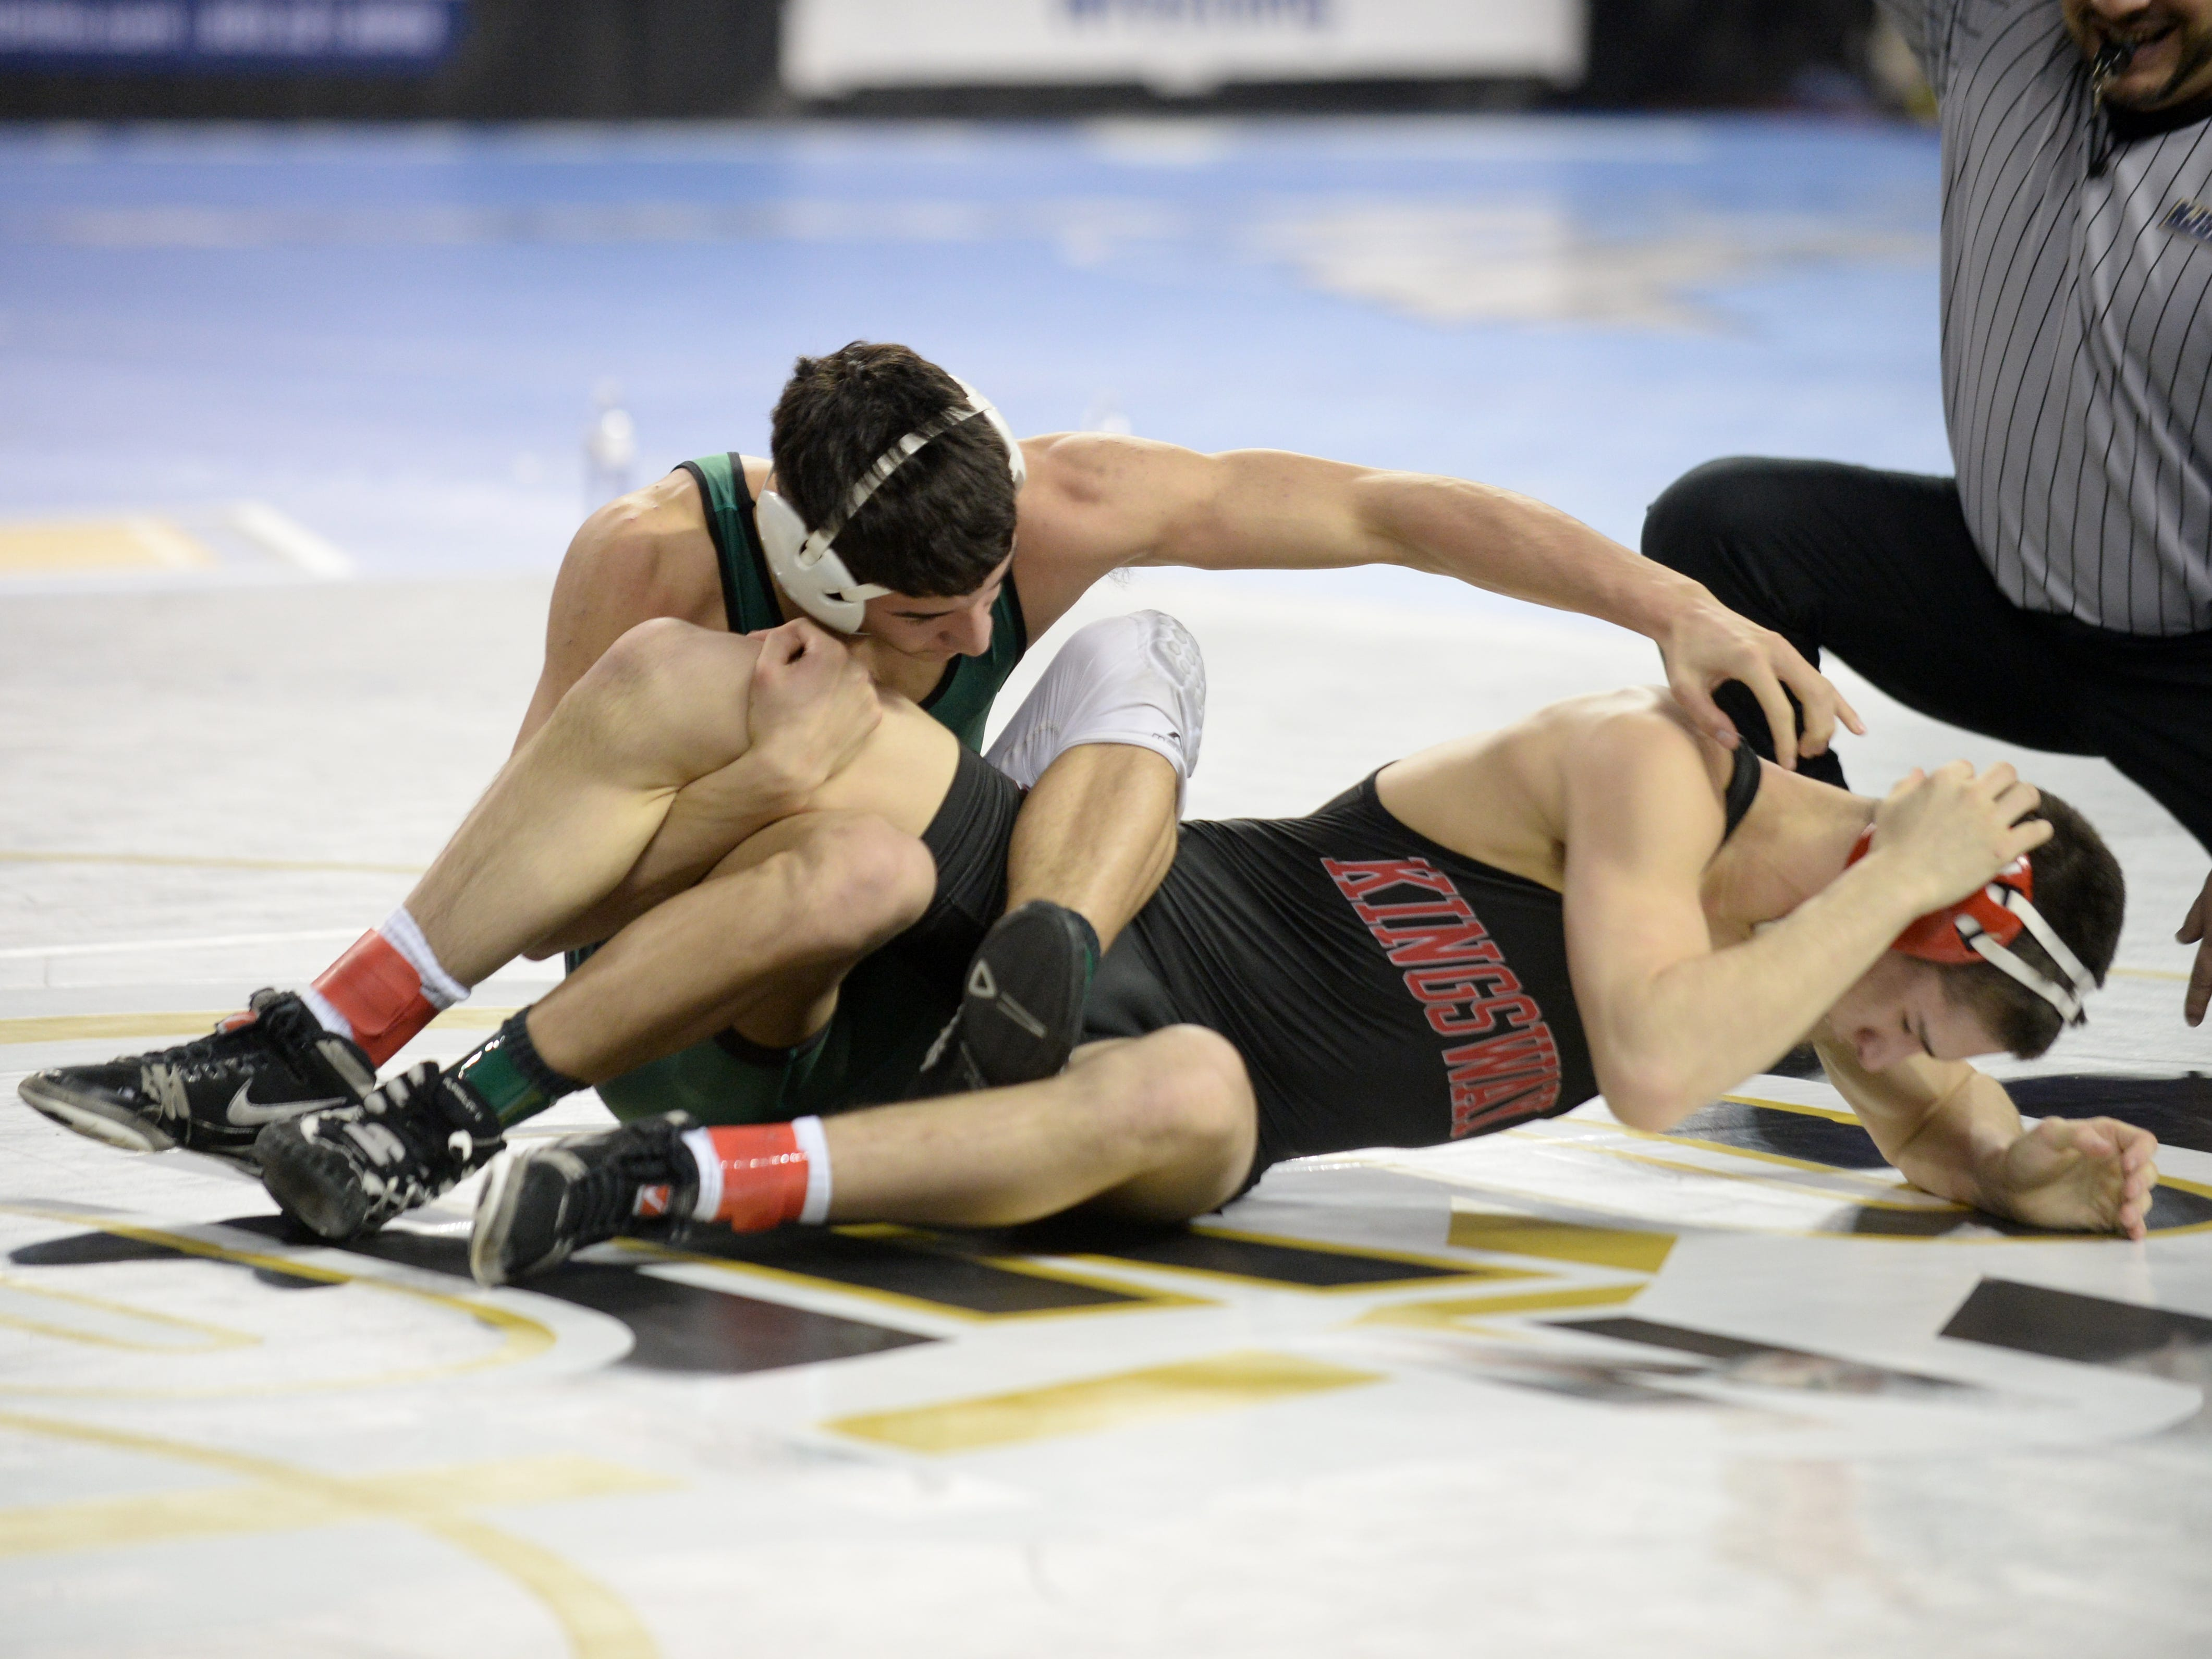 South Plainfield's Tommy Fierro wrestles Kingsway's Finnegan McFadden in a 132-pound first round bout during the NJSIAA Individual Wrestling Championships at Boardwalk Hall in Atlantic City, Thursday, Feb. 28, 2019.